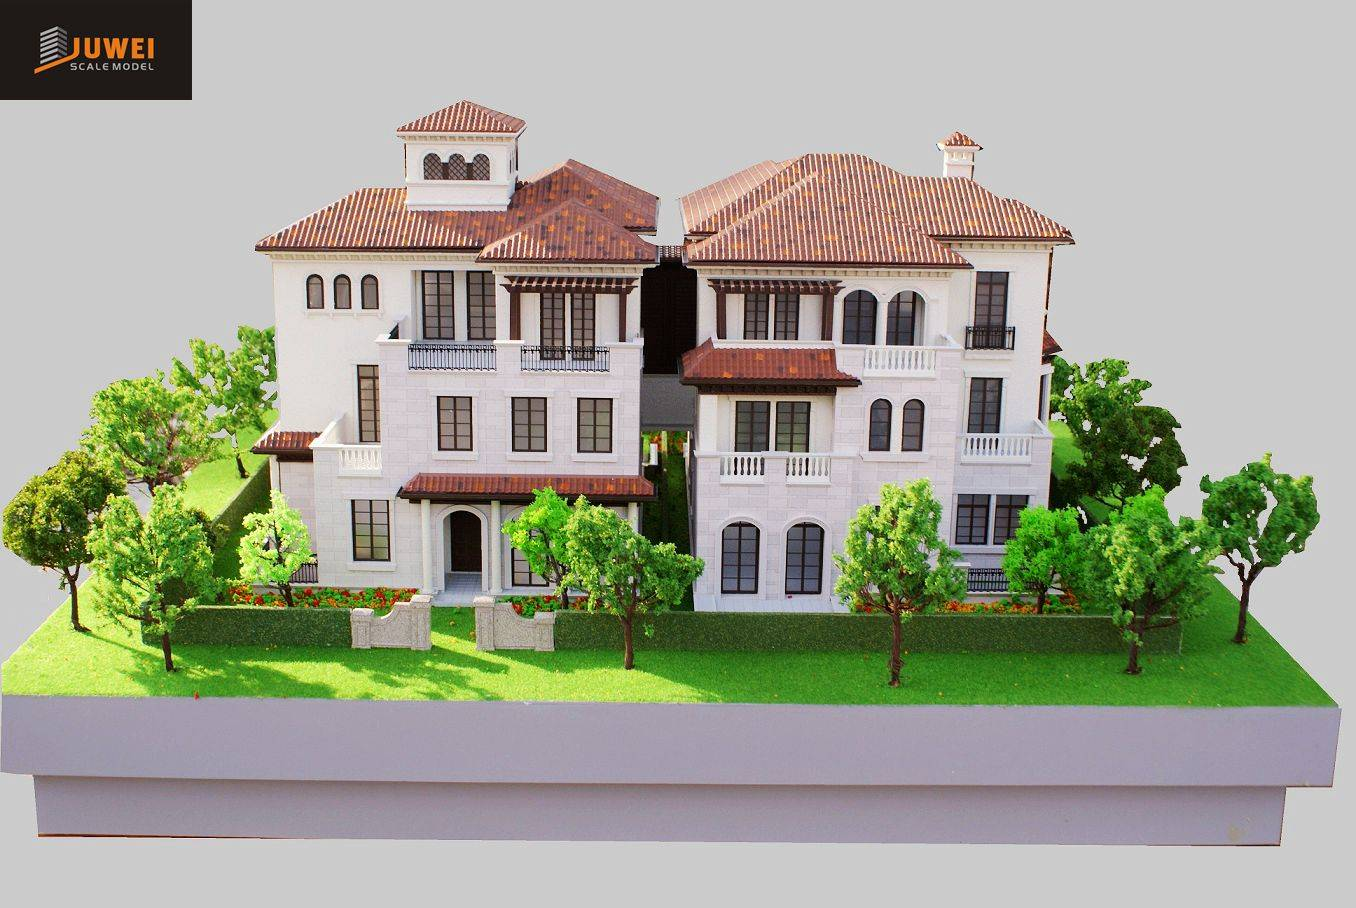 1:50 Scale Architectural Model of Villa